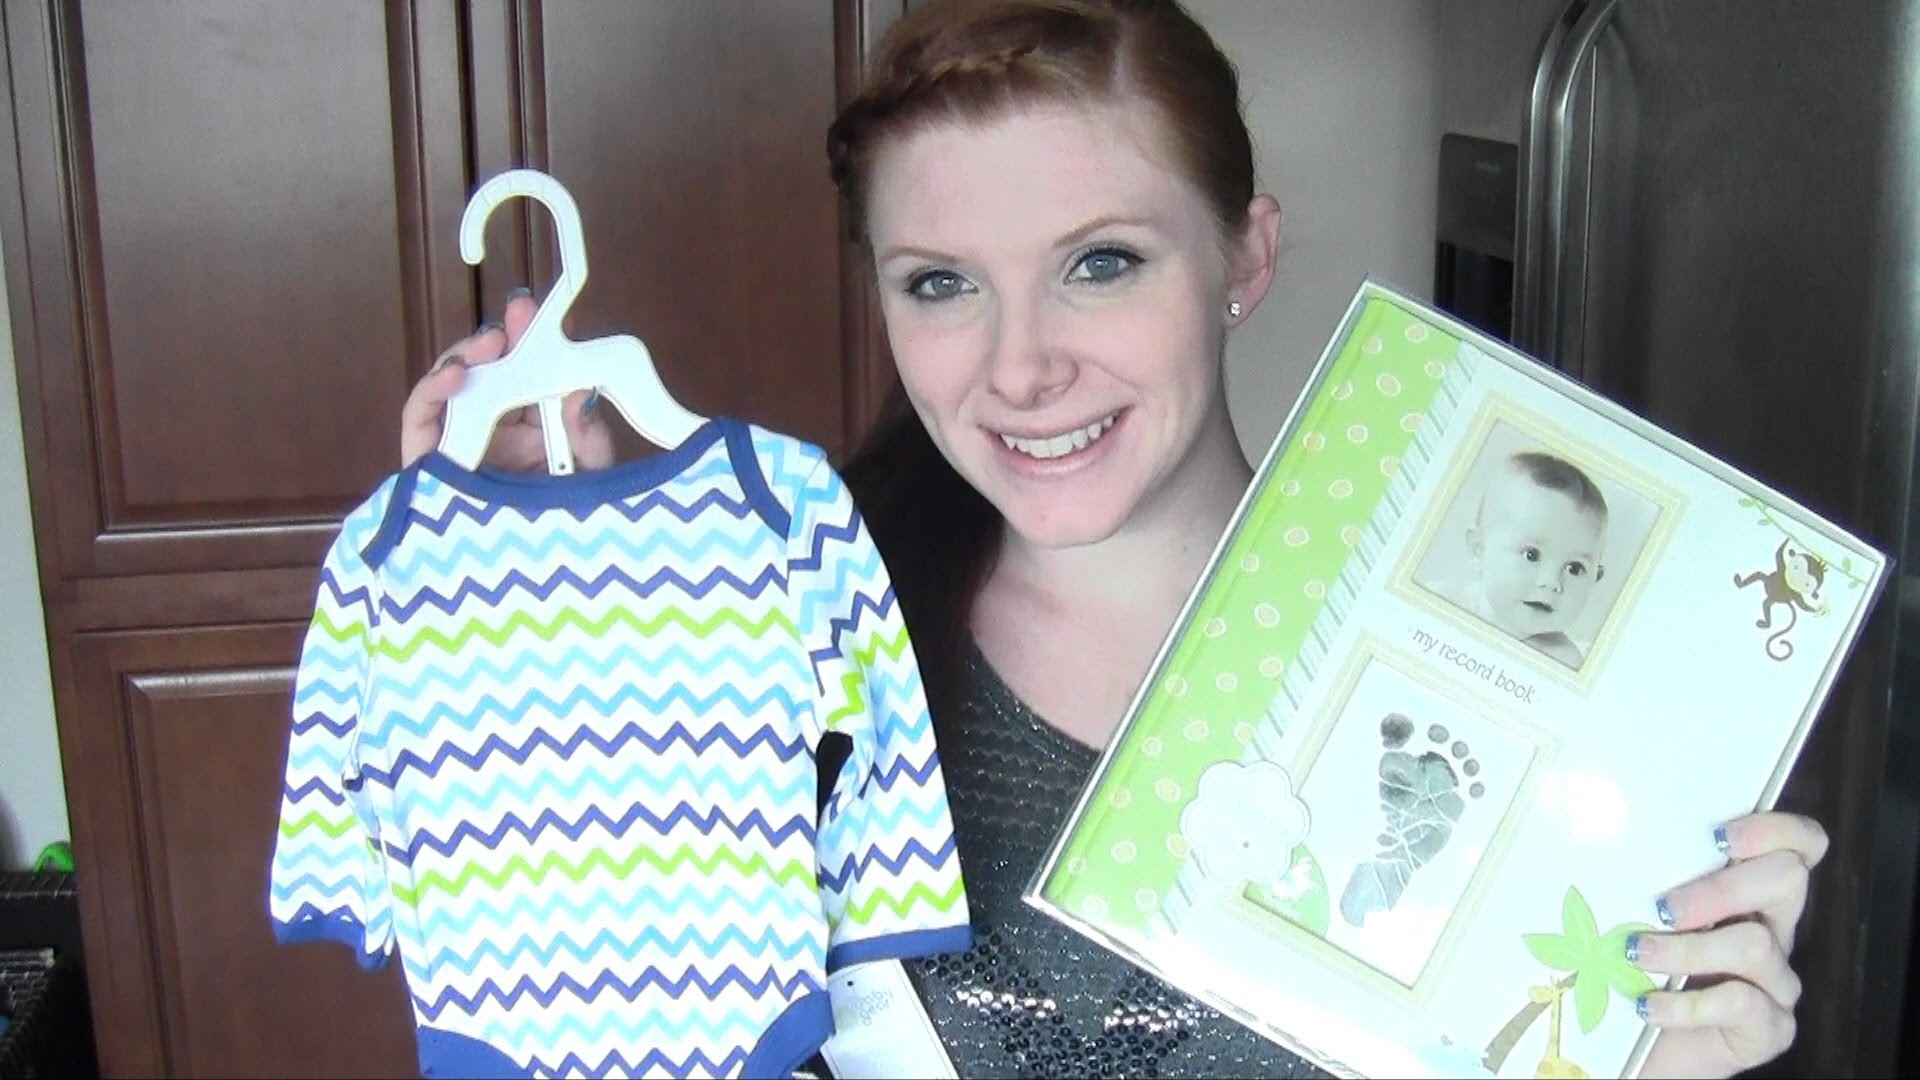 Last Minute Baby Buys - 9 Months Pregnant!